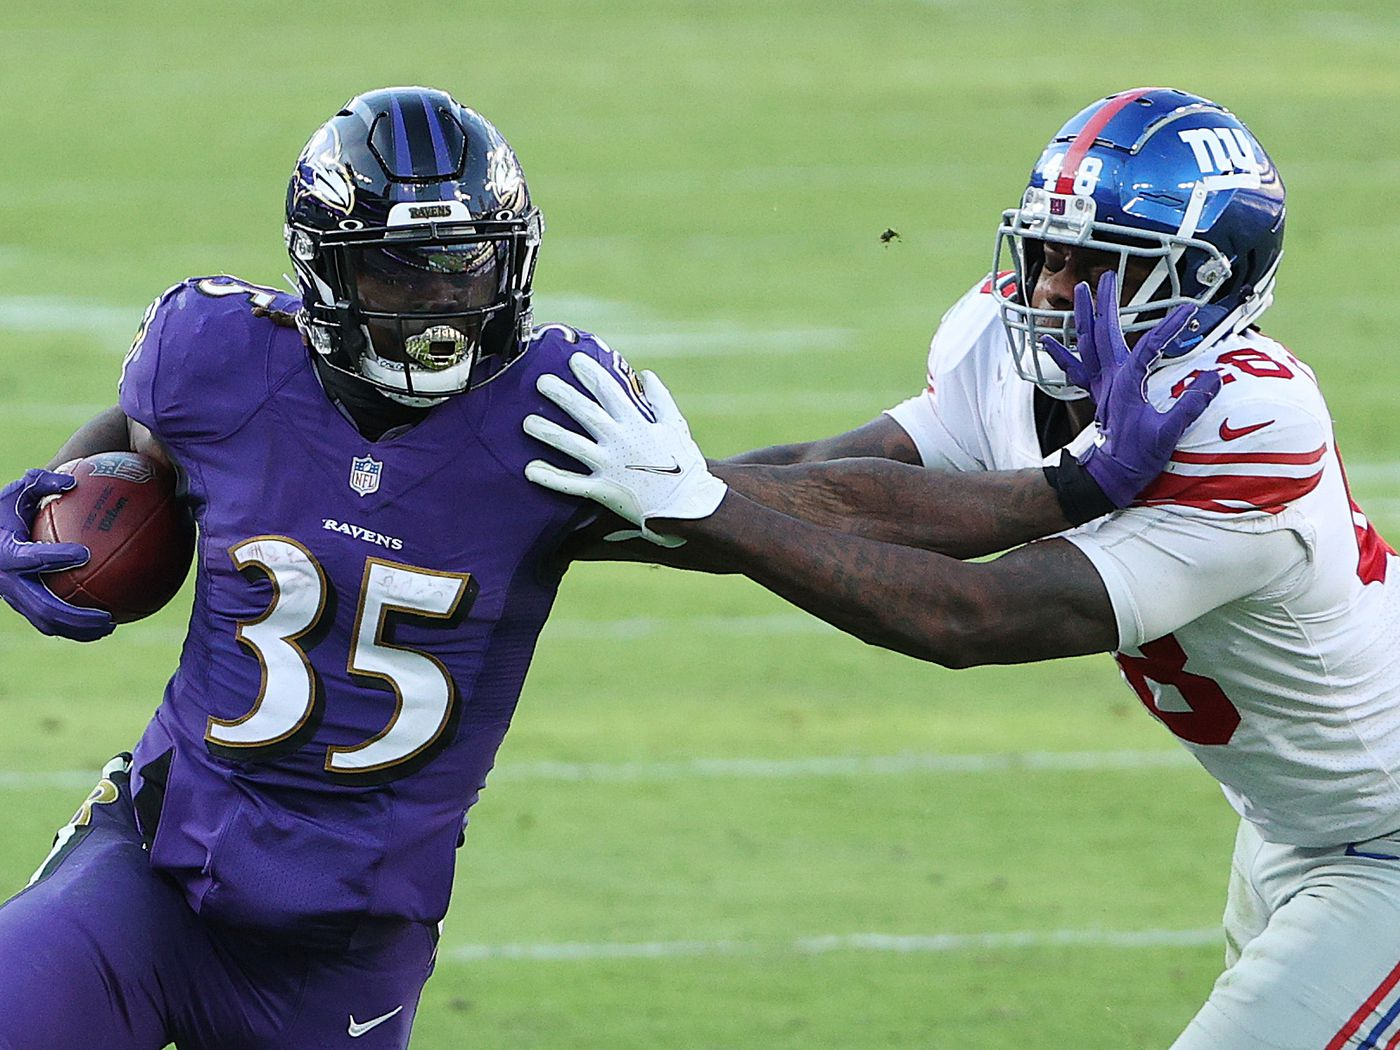 Giants At Ravens 4 Things We Learned From A Bruising Day In Baltimore Big Blue View